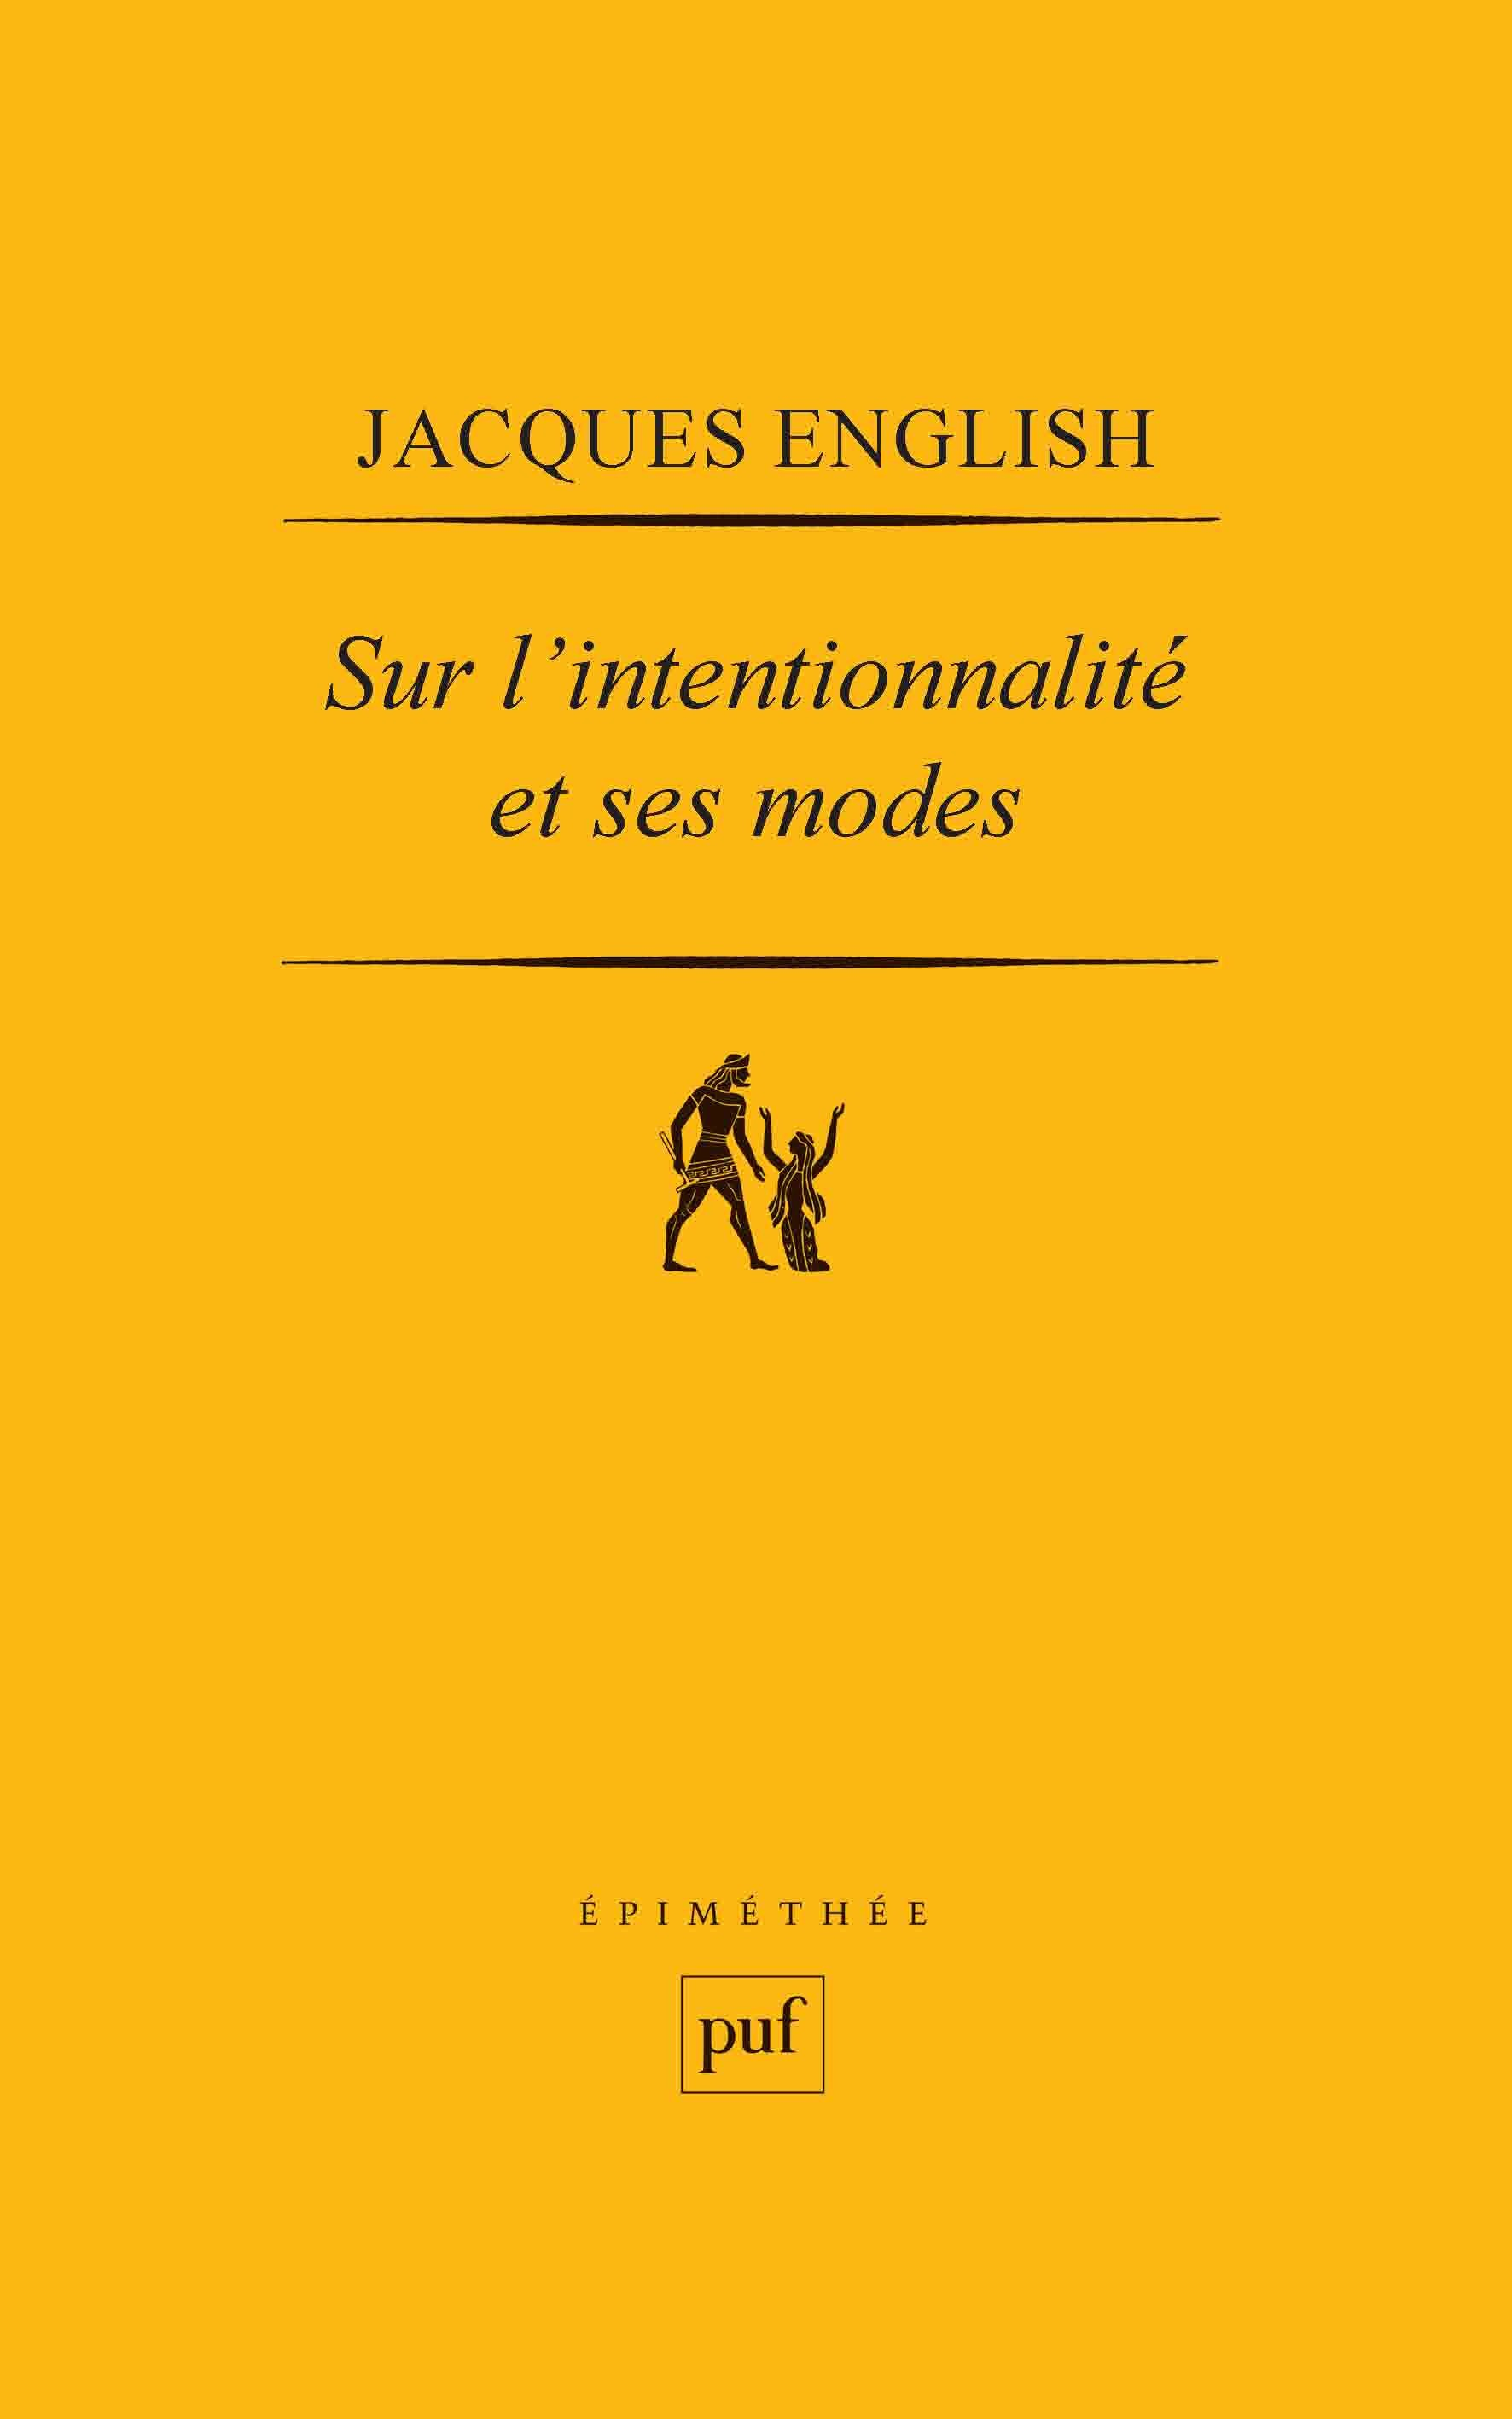 Jacques English Sur l'intentionnalité et ses modes